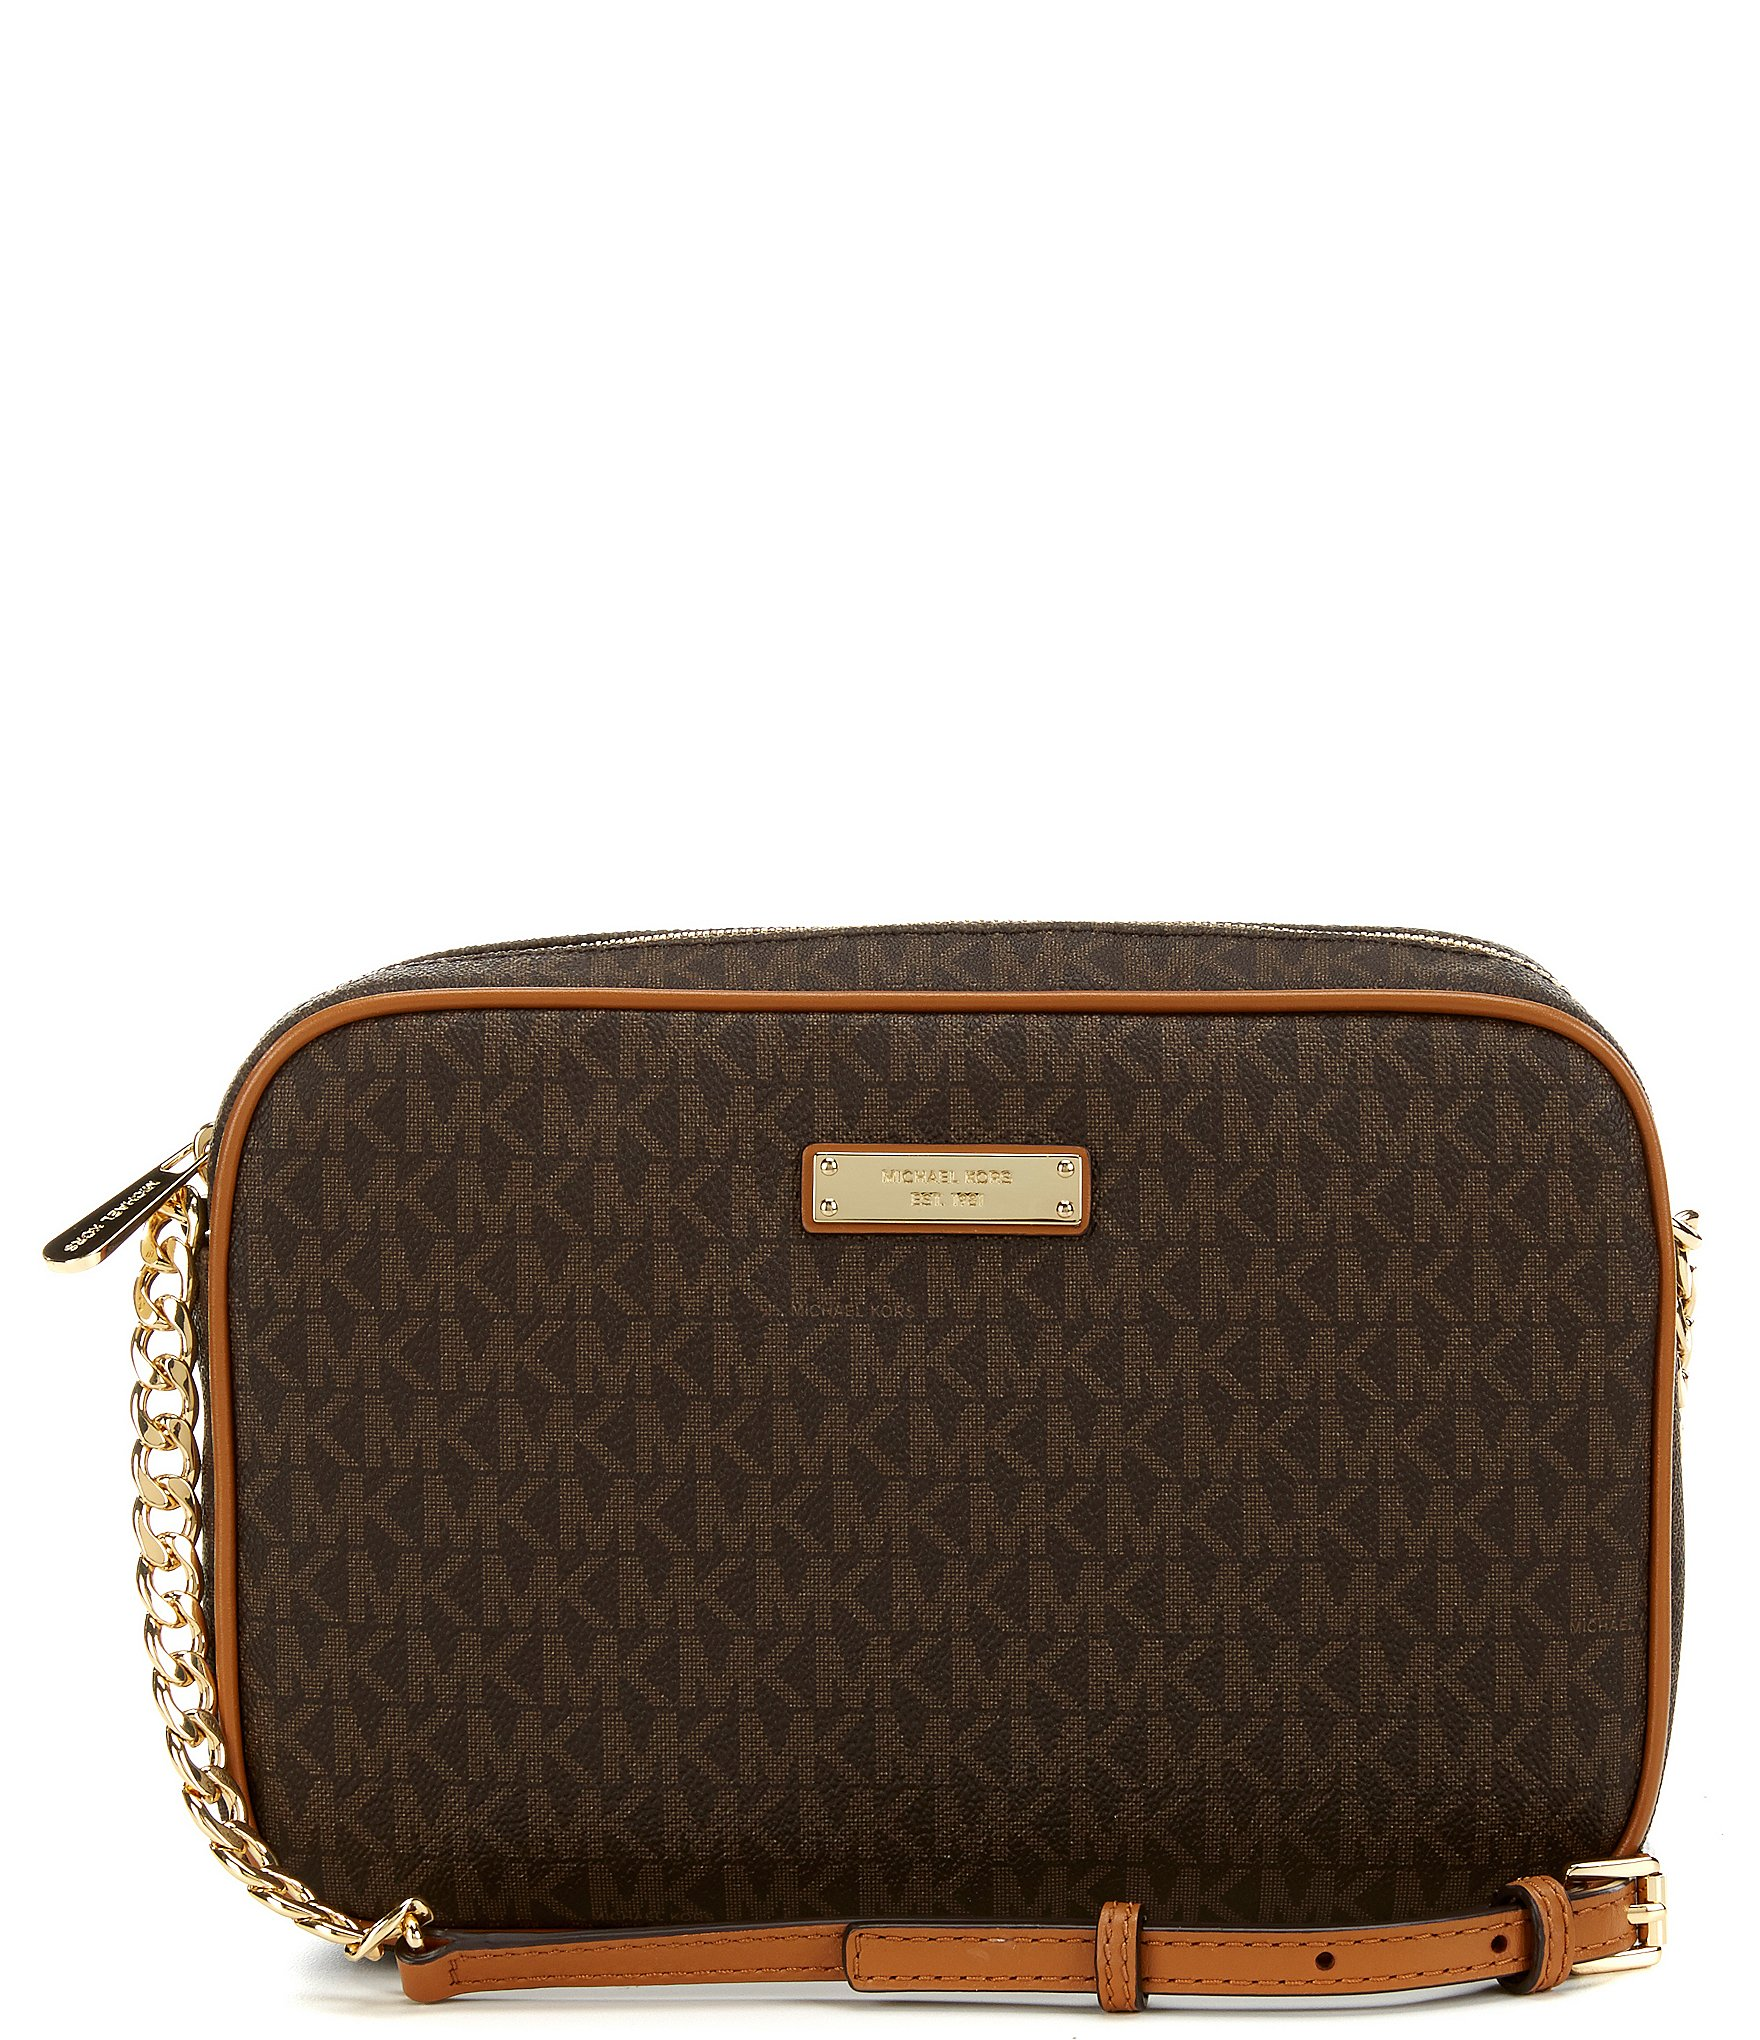 Michael Kors Jet Set Signature Medium Crossbody Bag